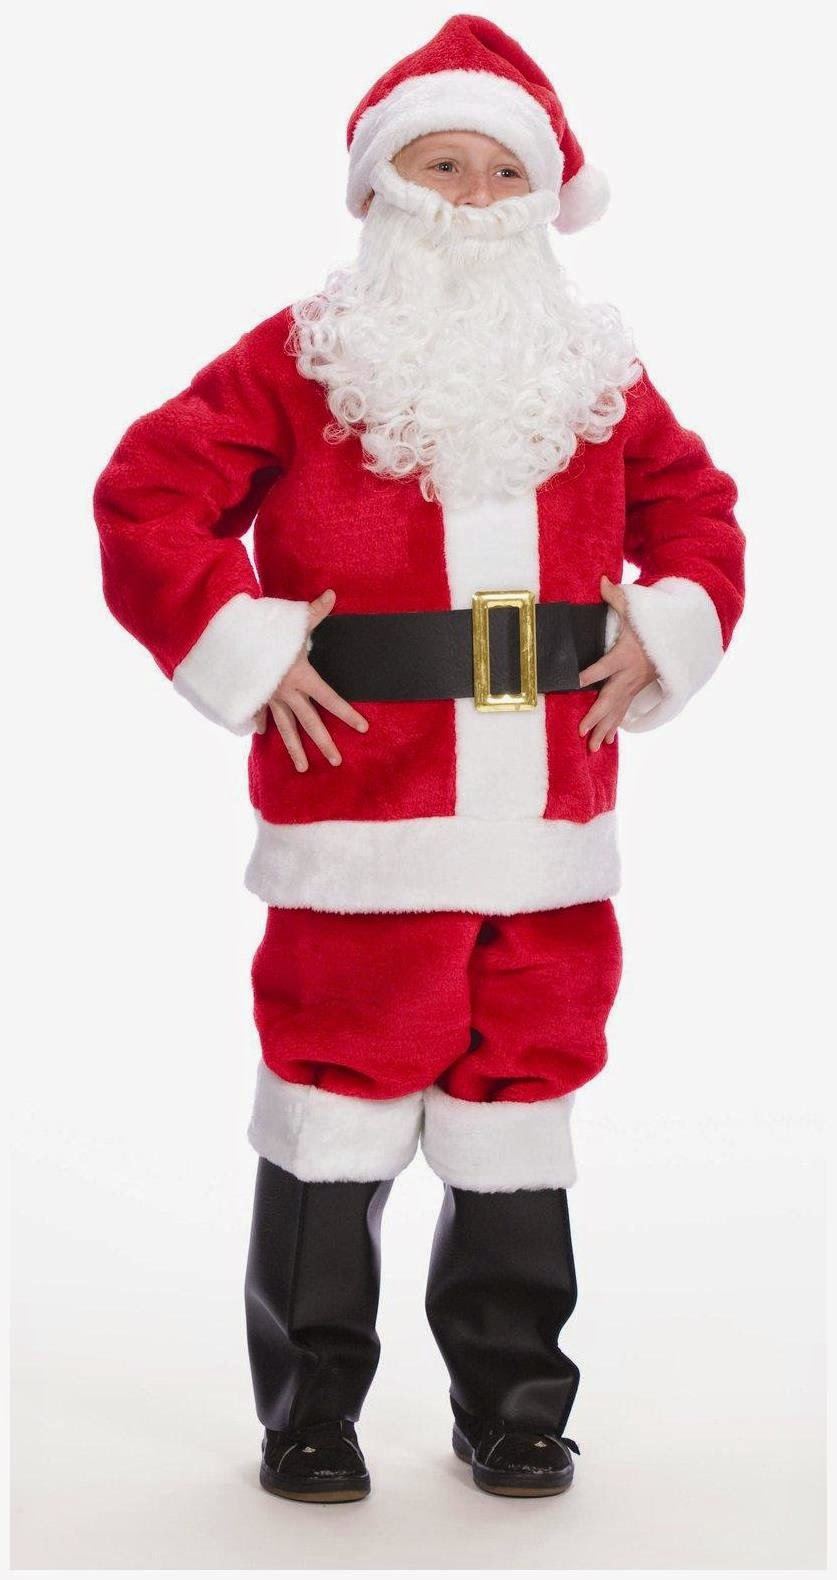 ff1f084de6c1b Kids love Christmas and the Santa costume is a perfect choice for them for  Christmas. Dress them like a Santa so as they can feel the joy of this  wonderful ...